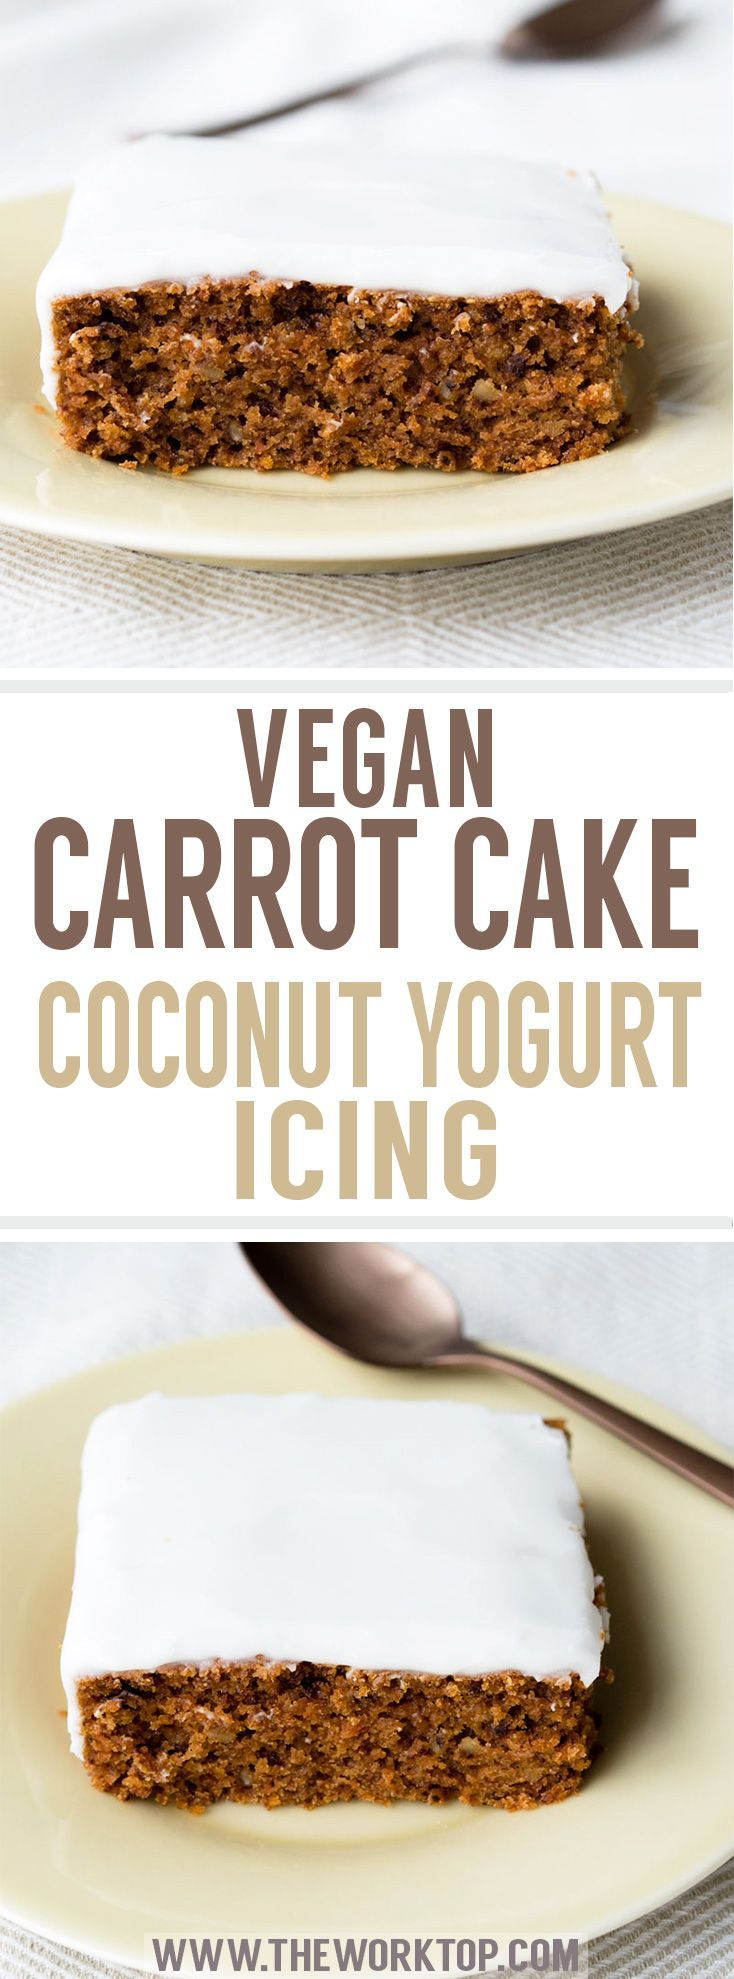 Vegan Carrot Cake with Coconut Yogurt Icing. A beautiful sheet cake with a lovely crumb texture. Healthy and delicious. Recipe from www.theworktop.com. #carrotcake #vegancake #coconut